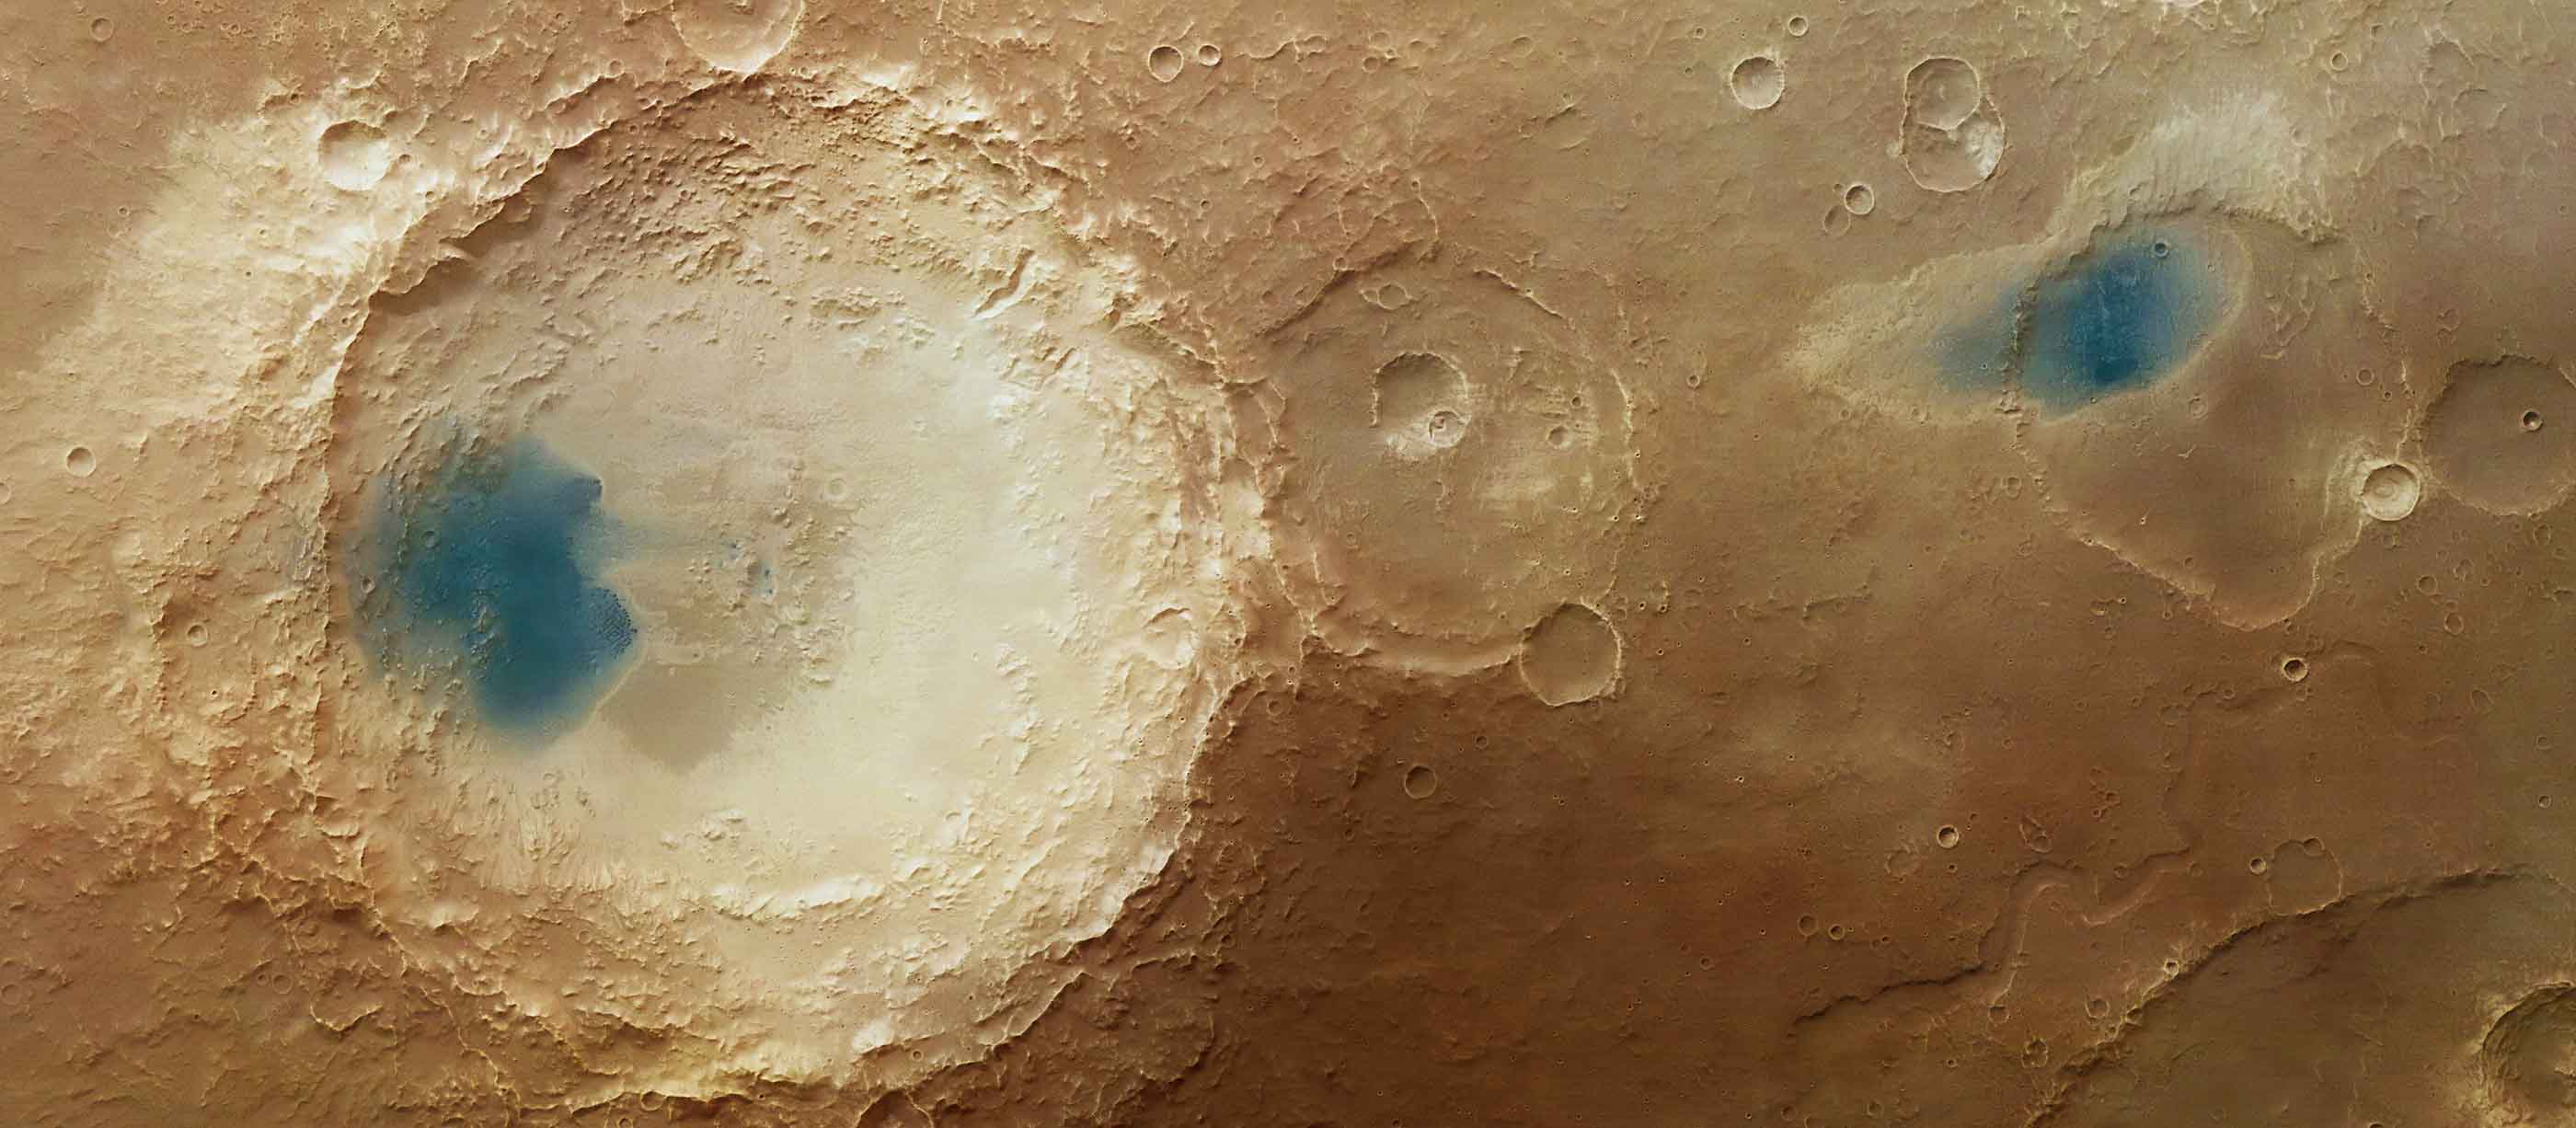 Crater Generations ArabiaTerra